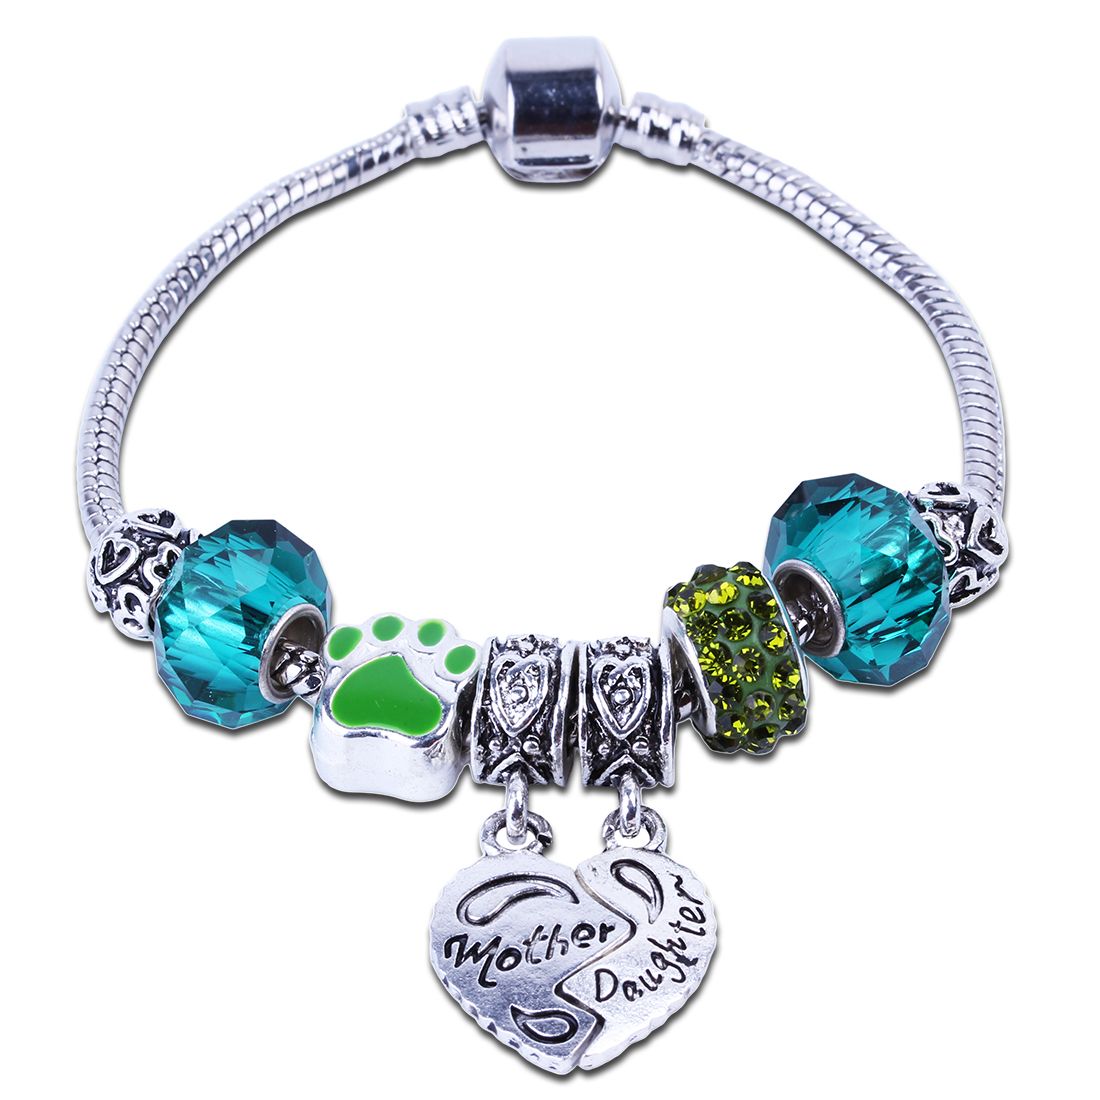 Fashion European Green Crystal Mother Daughter Charm Bracelet DIY Beads Fits Original Bracelets & bangles Wholesale For Women(China (Mainland))